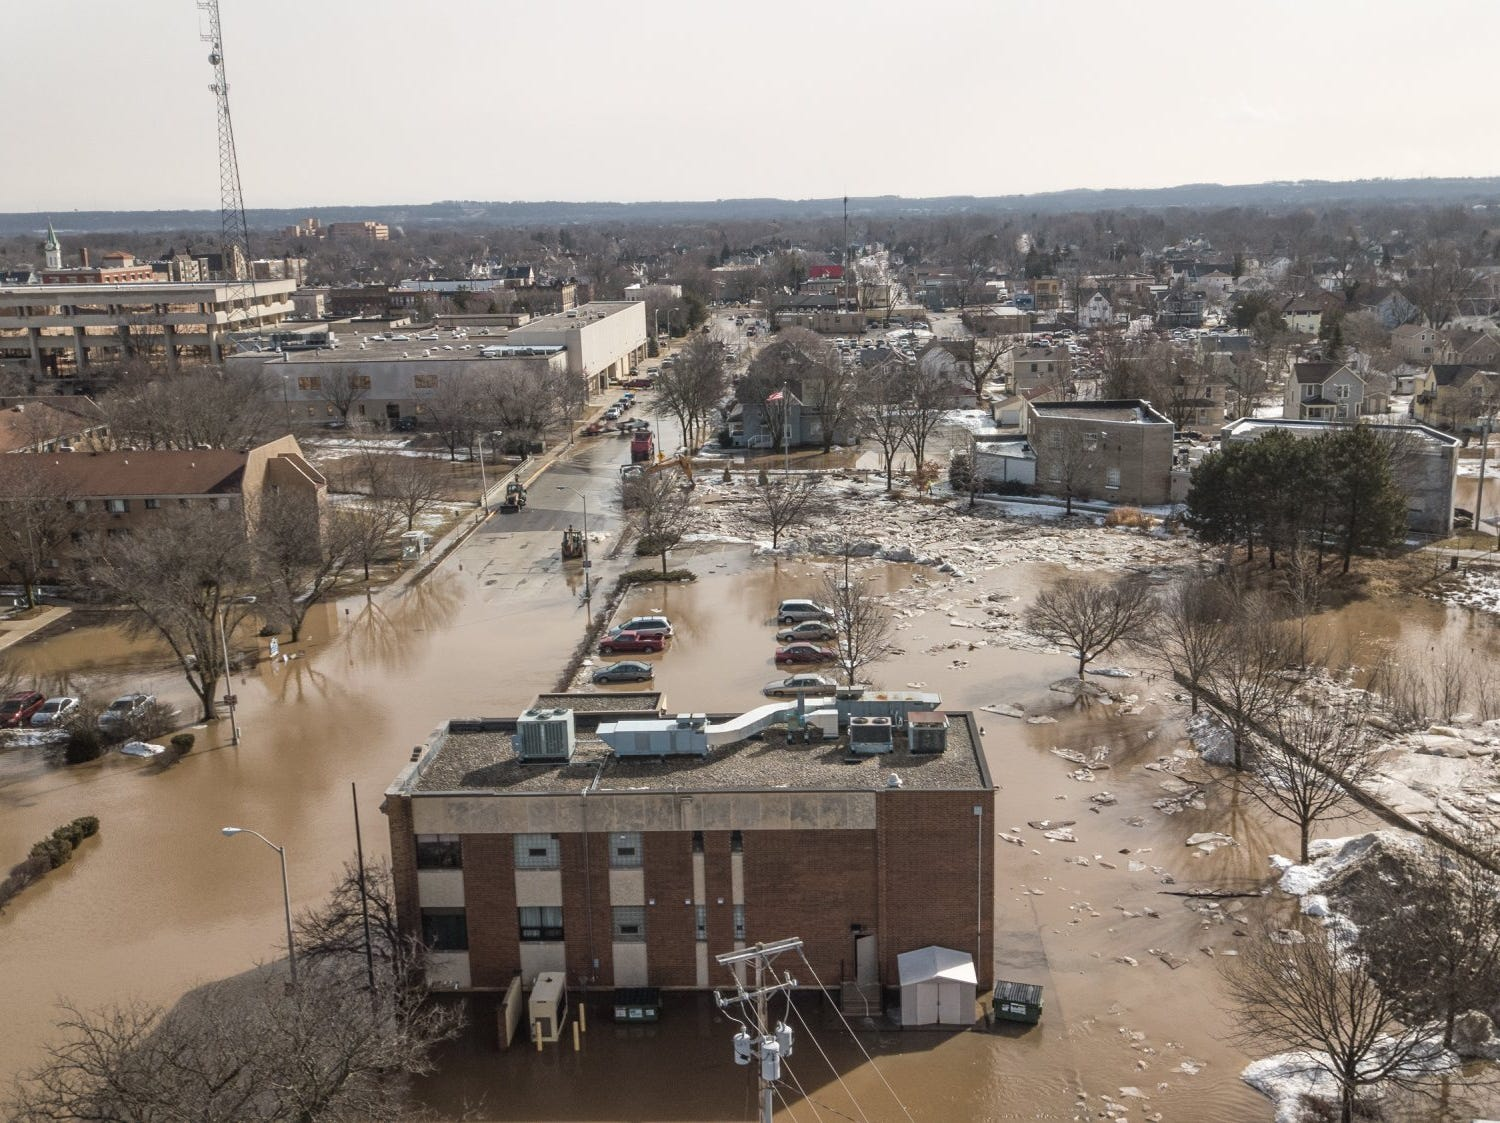 The Western Avenue is flooded after ice jams on the Fond du Lac River on Thursday, March 14. This photo was taken by drone at about 11 a.m.